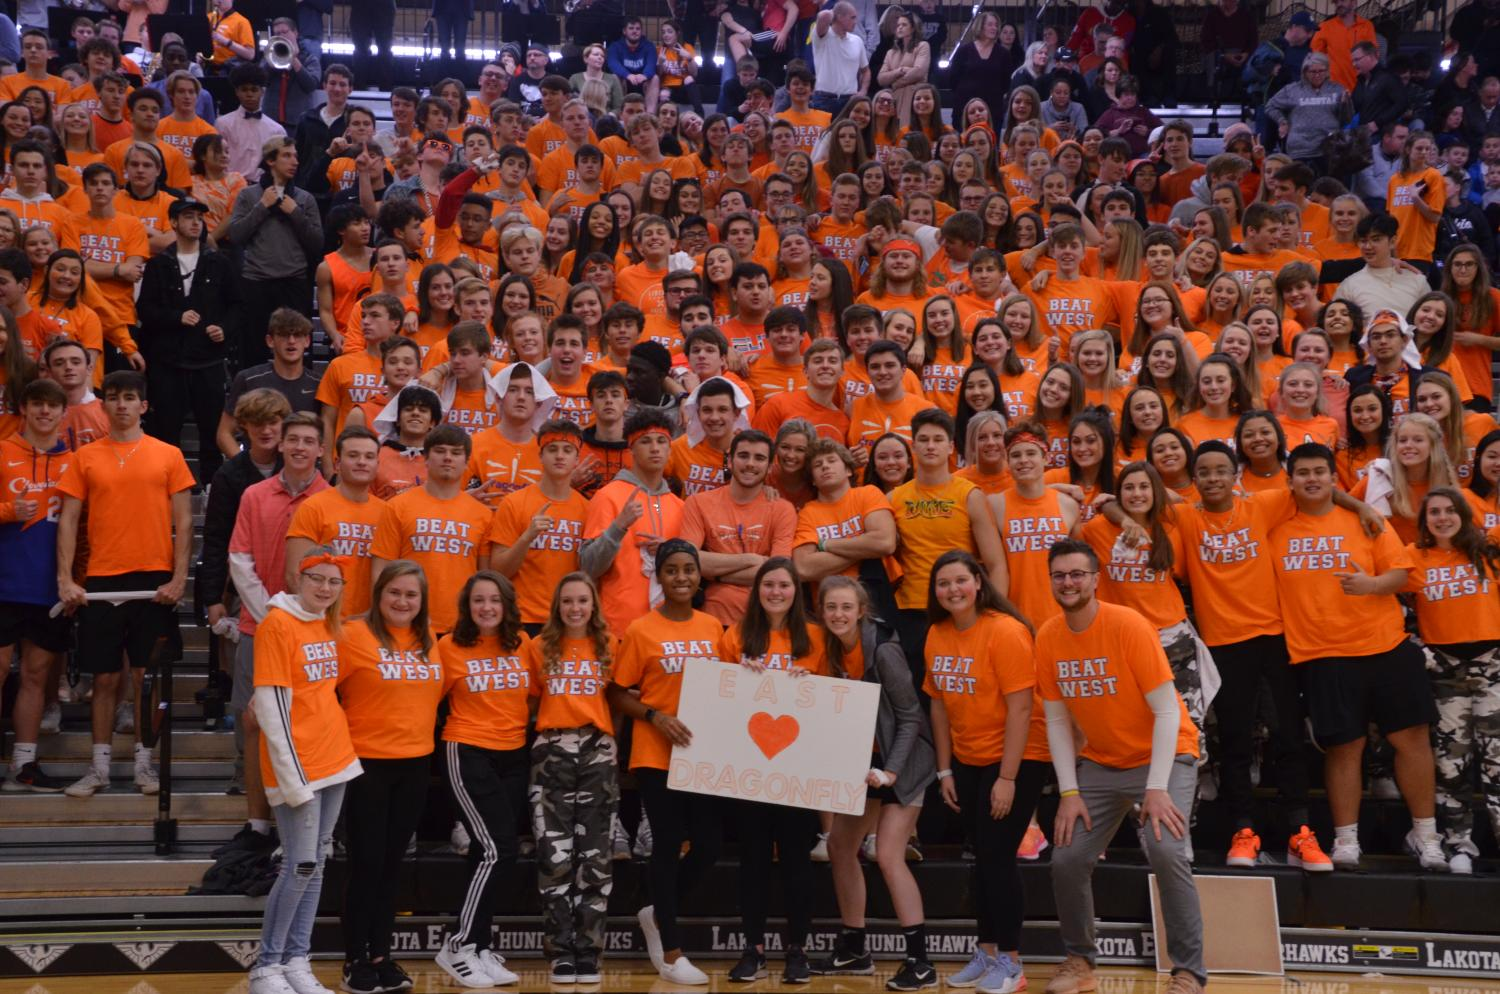 dragonfly foundation, orange out, orange, lakota, lakota east, lakota east dragonfly foundation, hannah fuller, riley higgins, dean hume